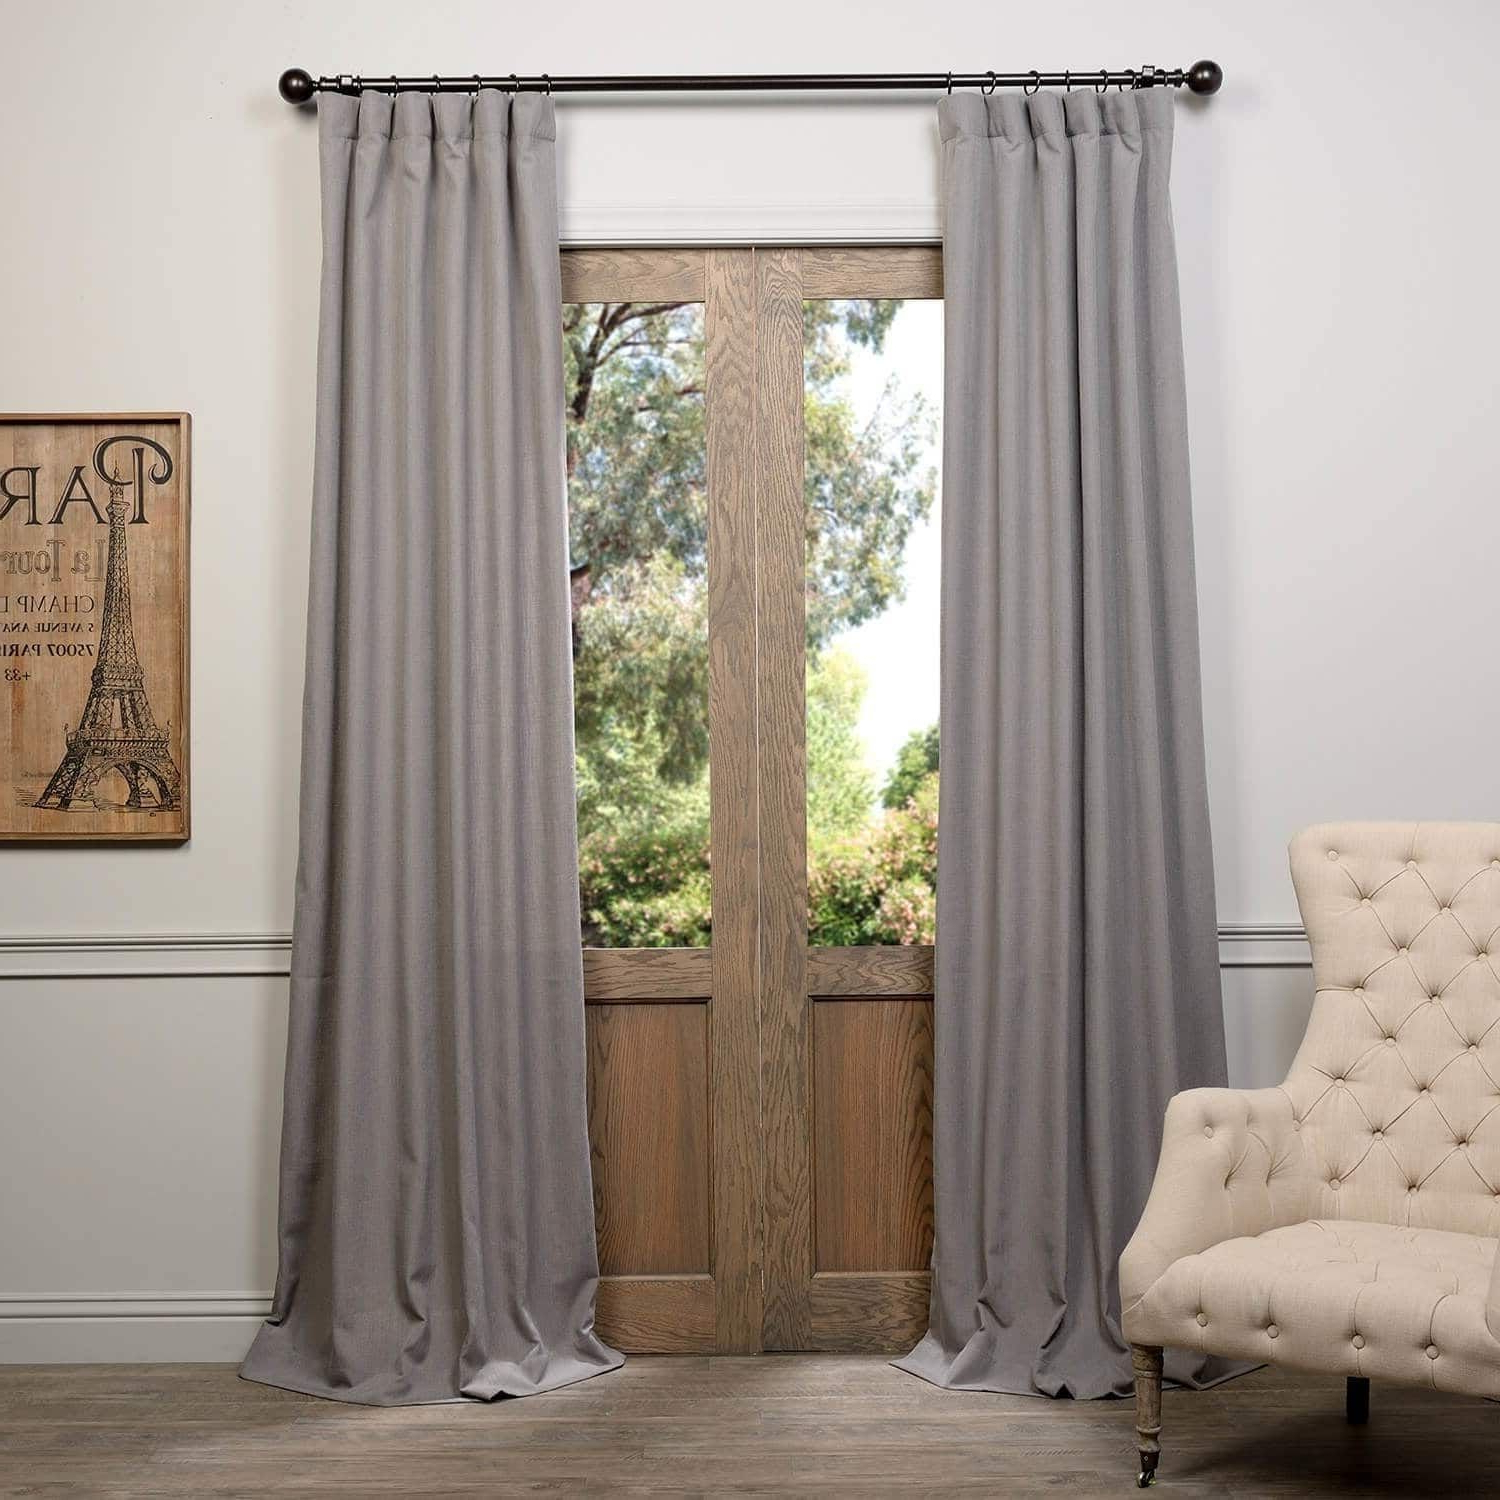 Fashionable Heavy Faux Linen Single Curtain Panel (View 11 of 20)